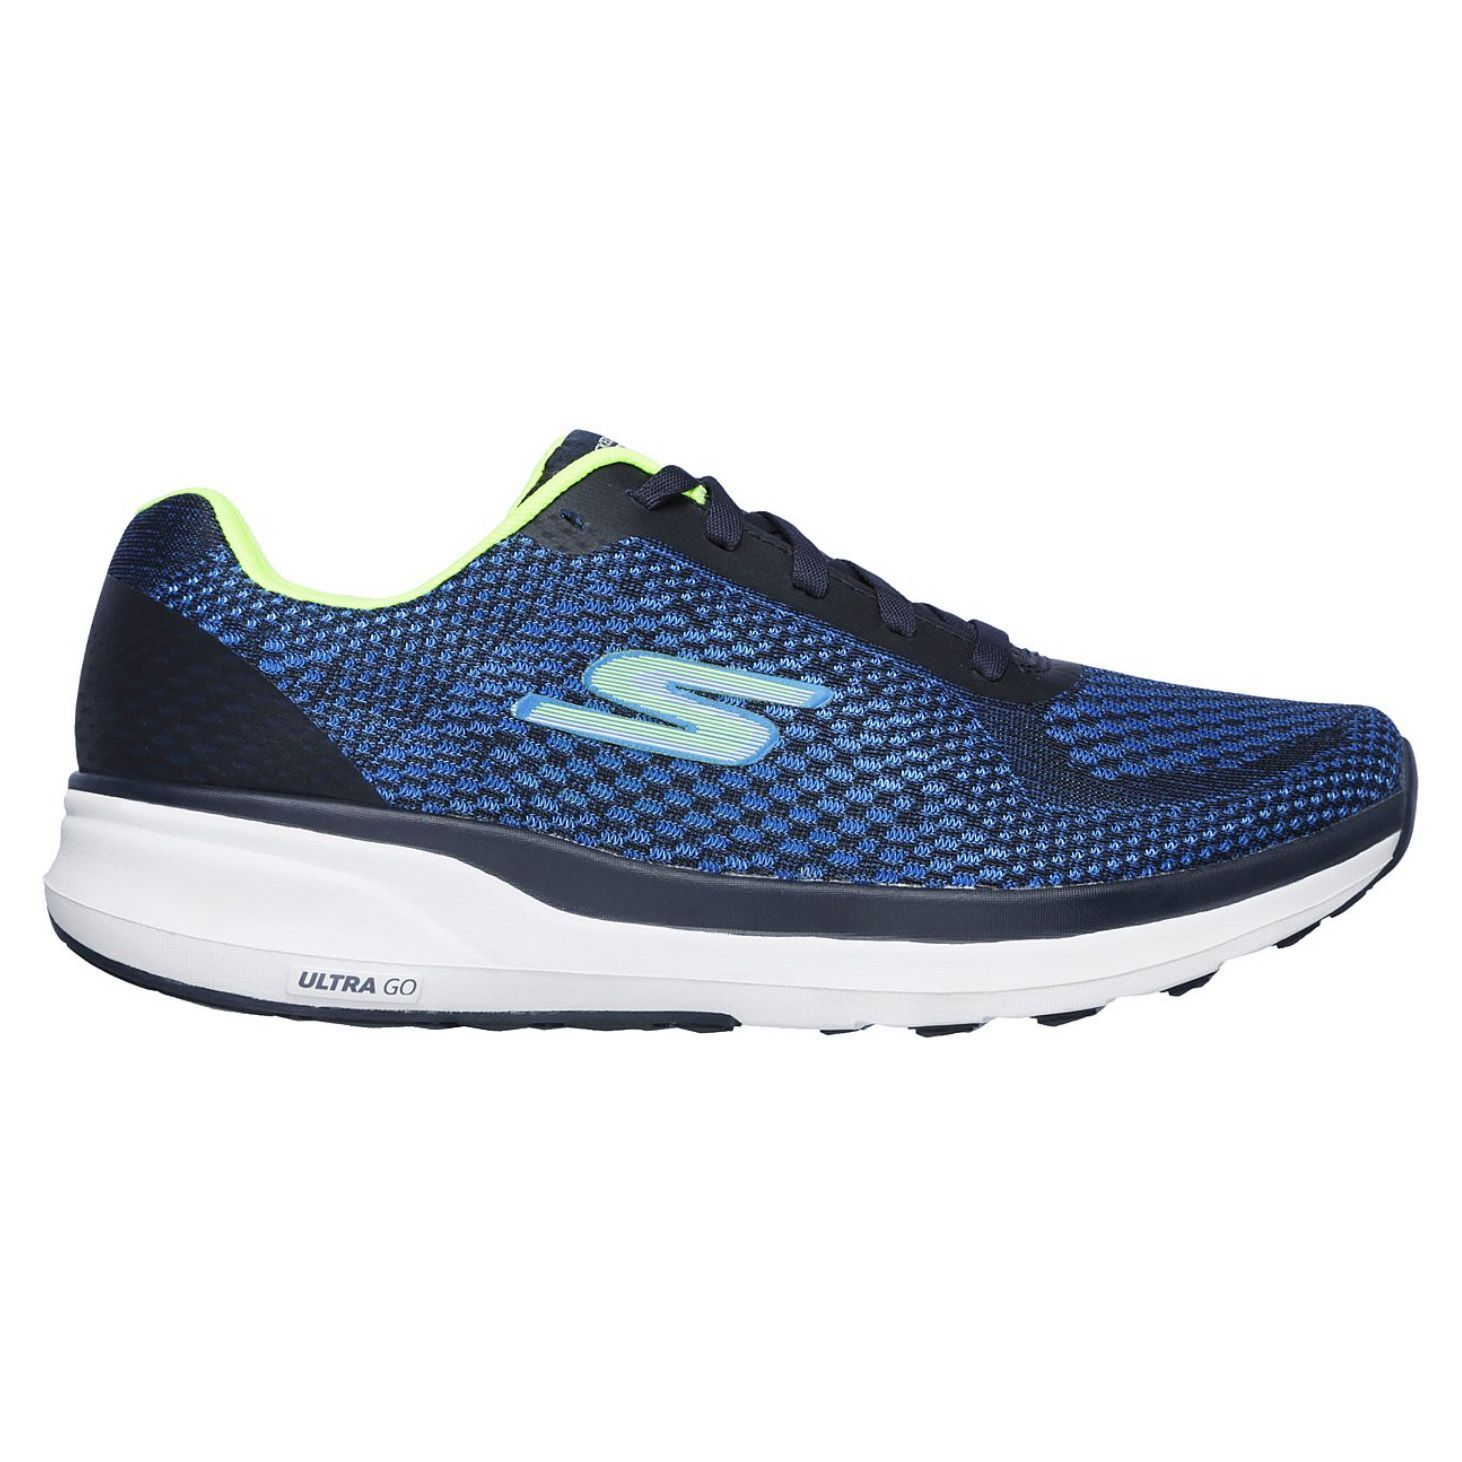 Skechers Running Shoes | Best Skechers